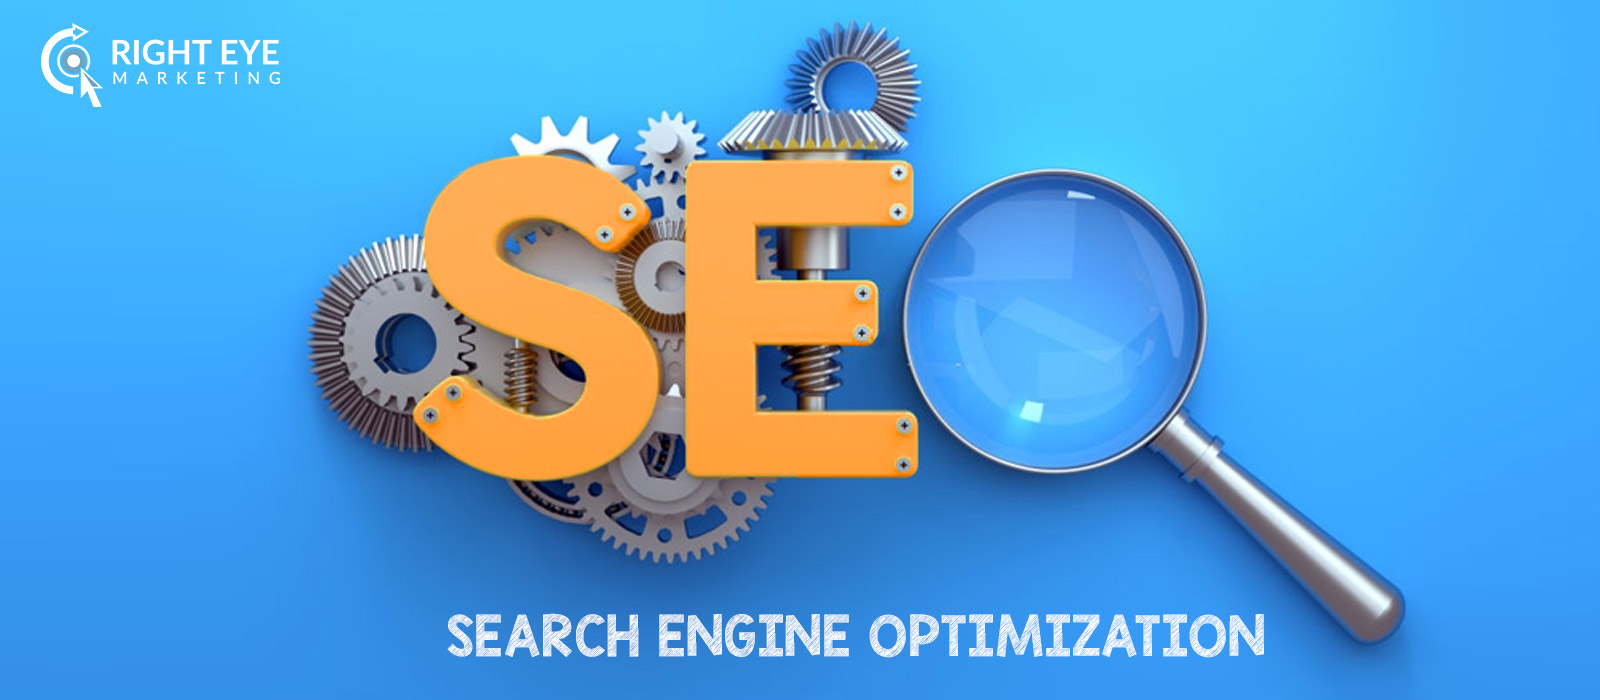 seo companies california - right eye marketing